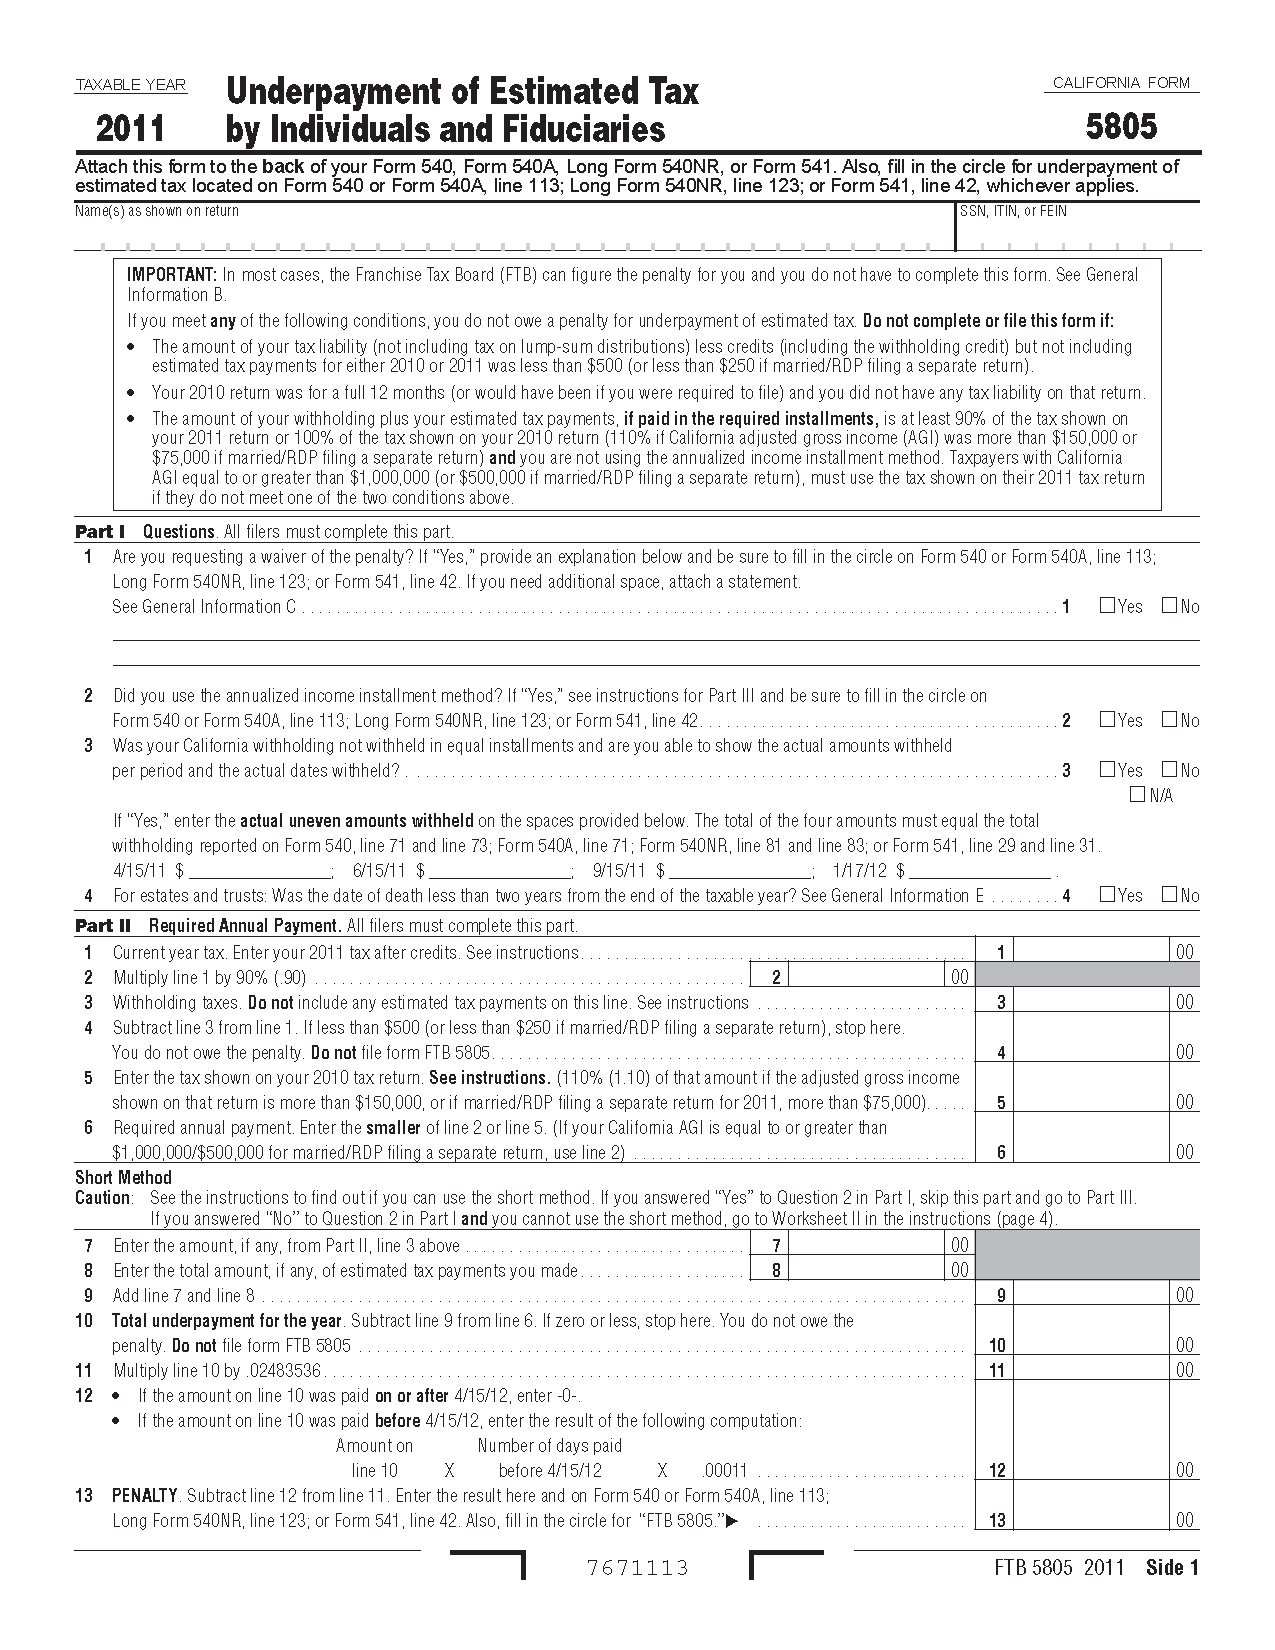 5805 Form Underpayment Of Estimated Tax By Individuals And Fiduciaries